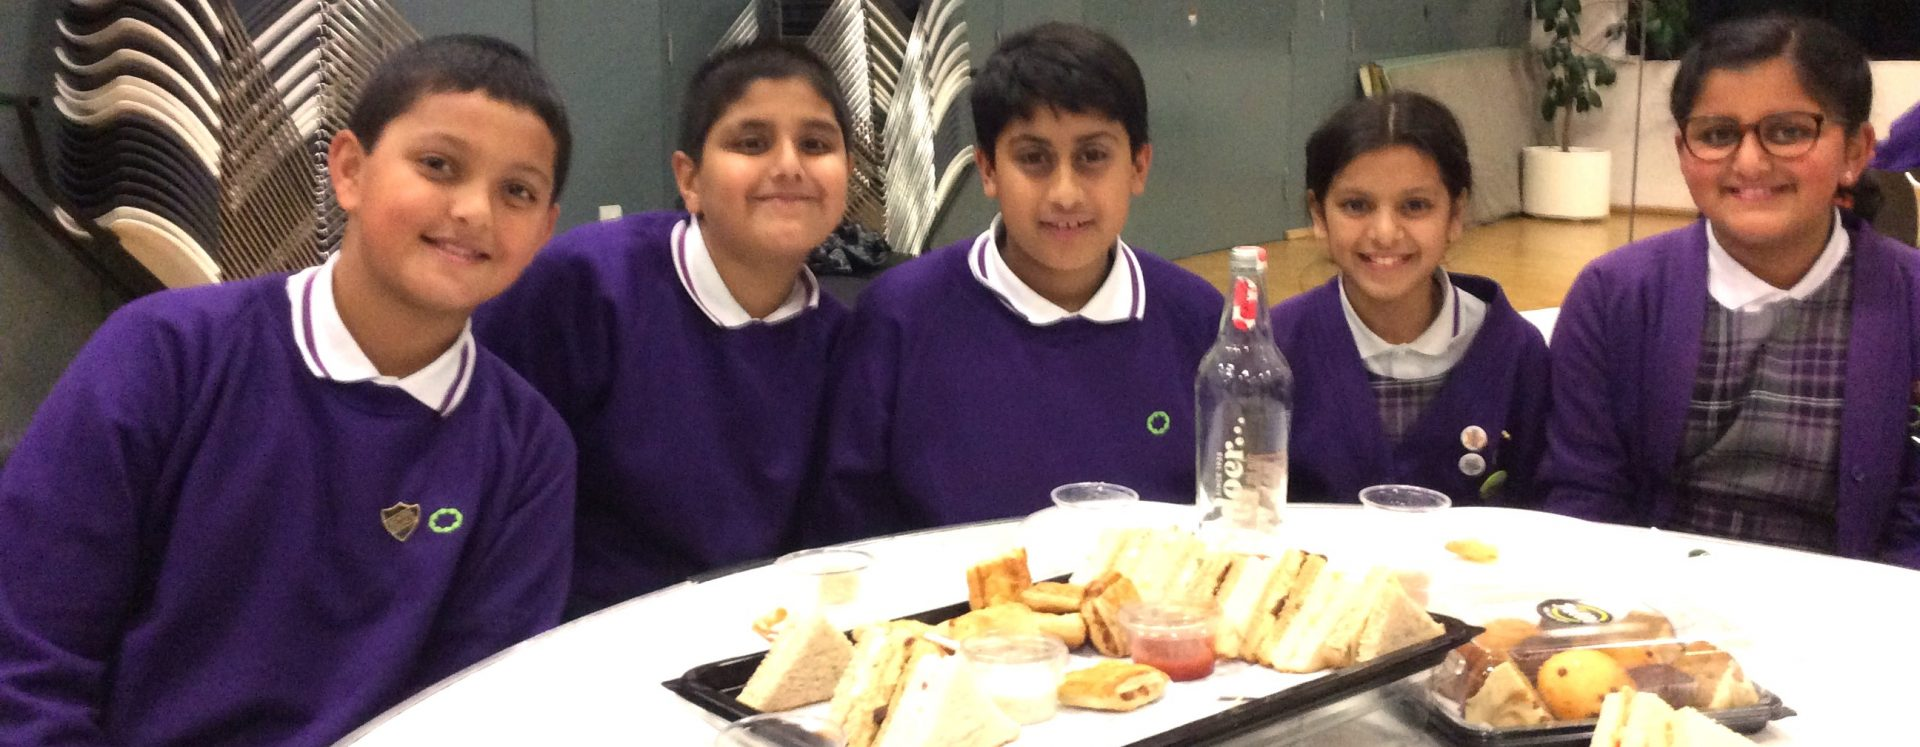 Forming friendships and deepening understanding during Inter Faith Week